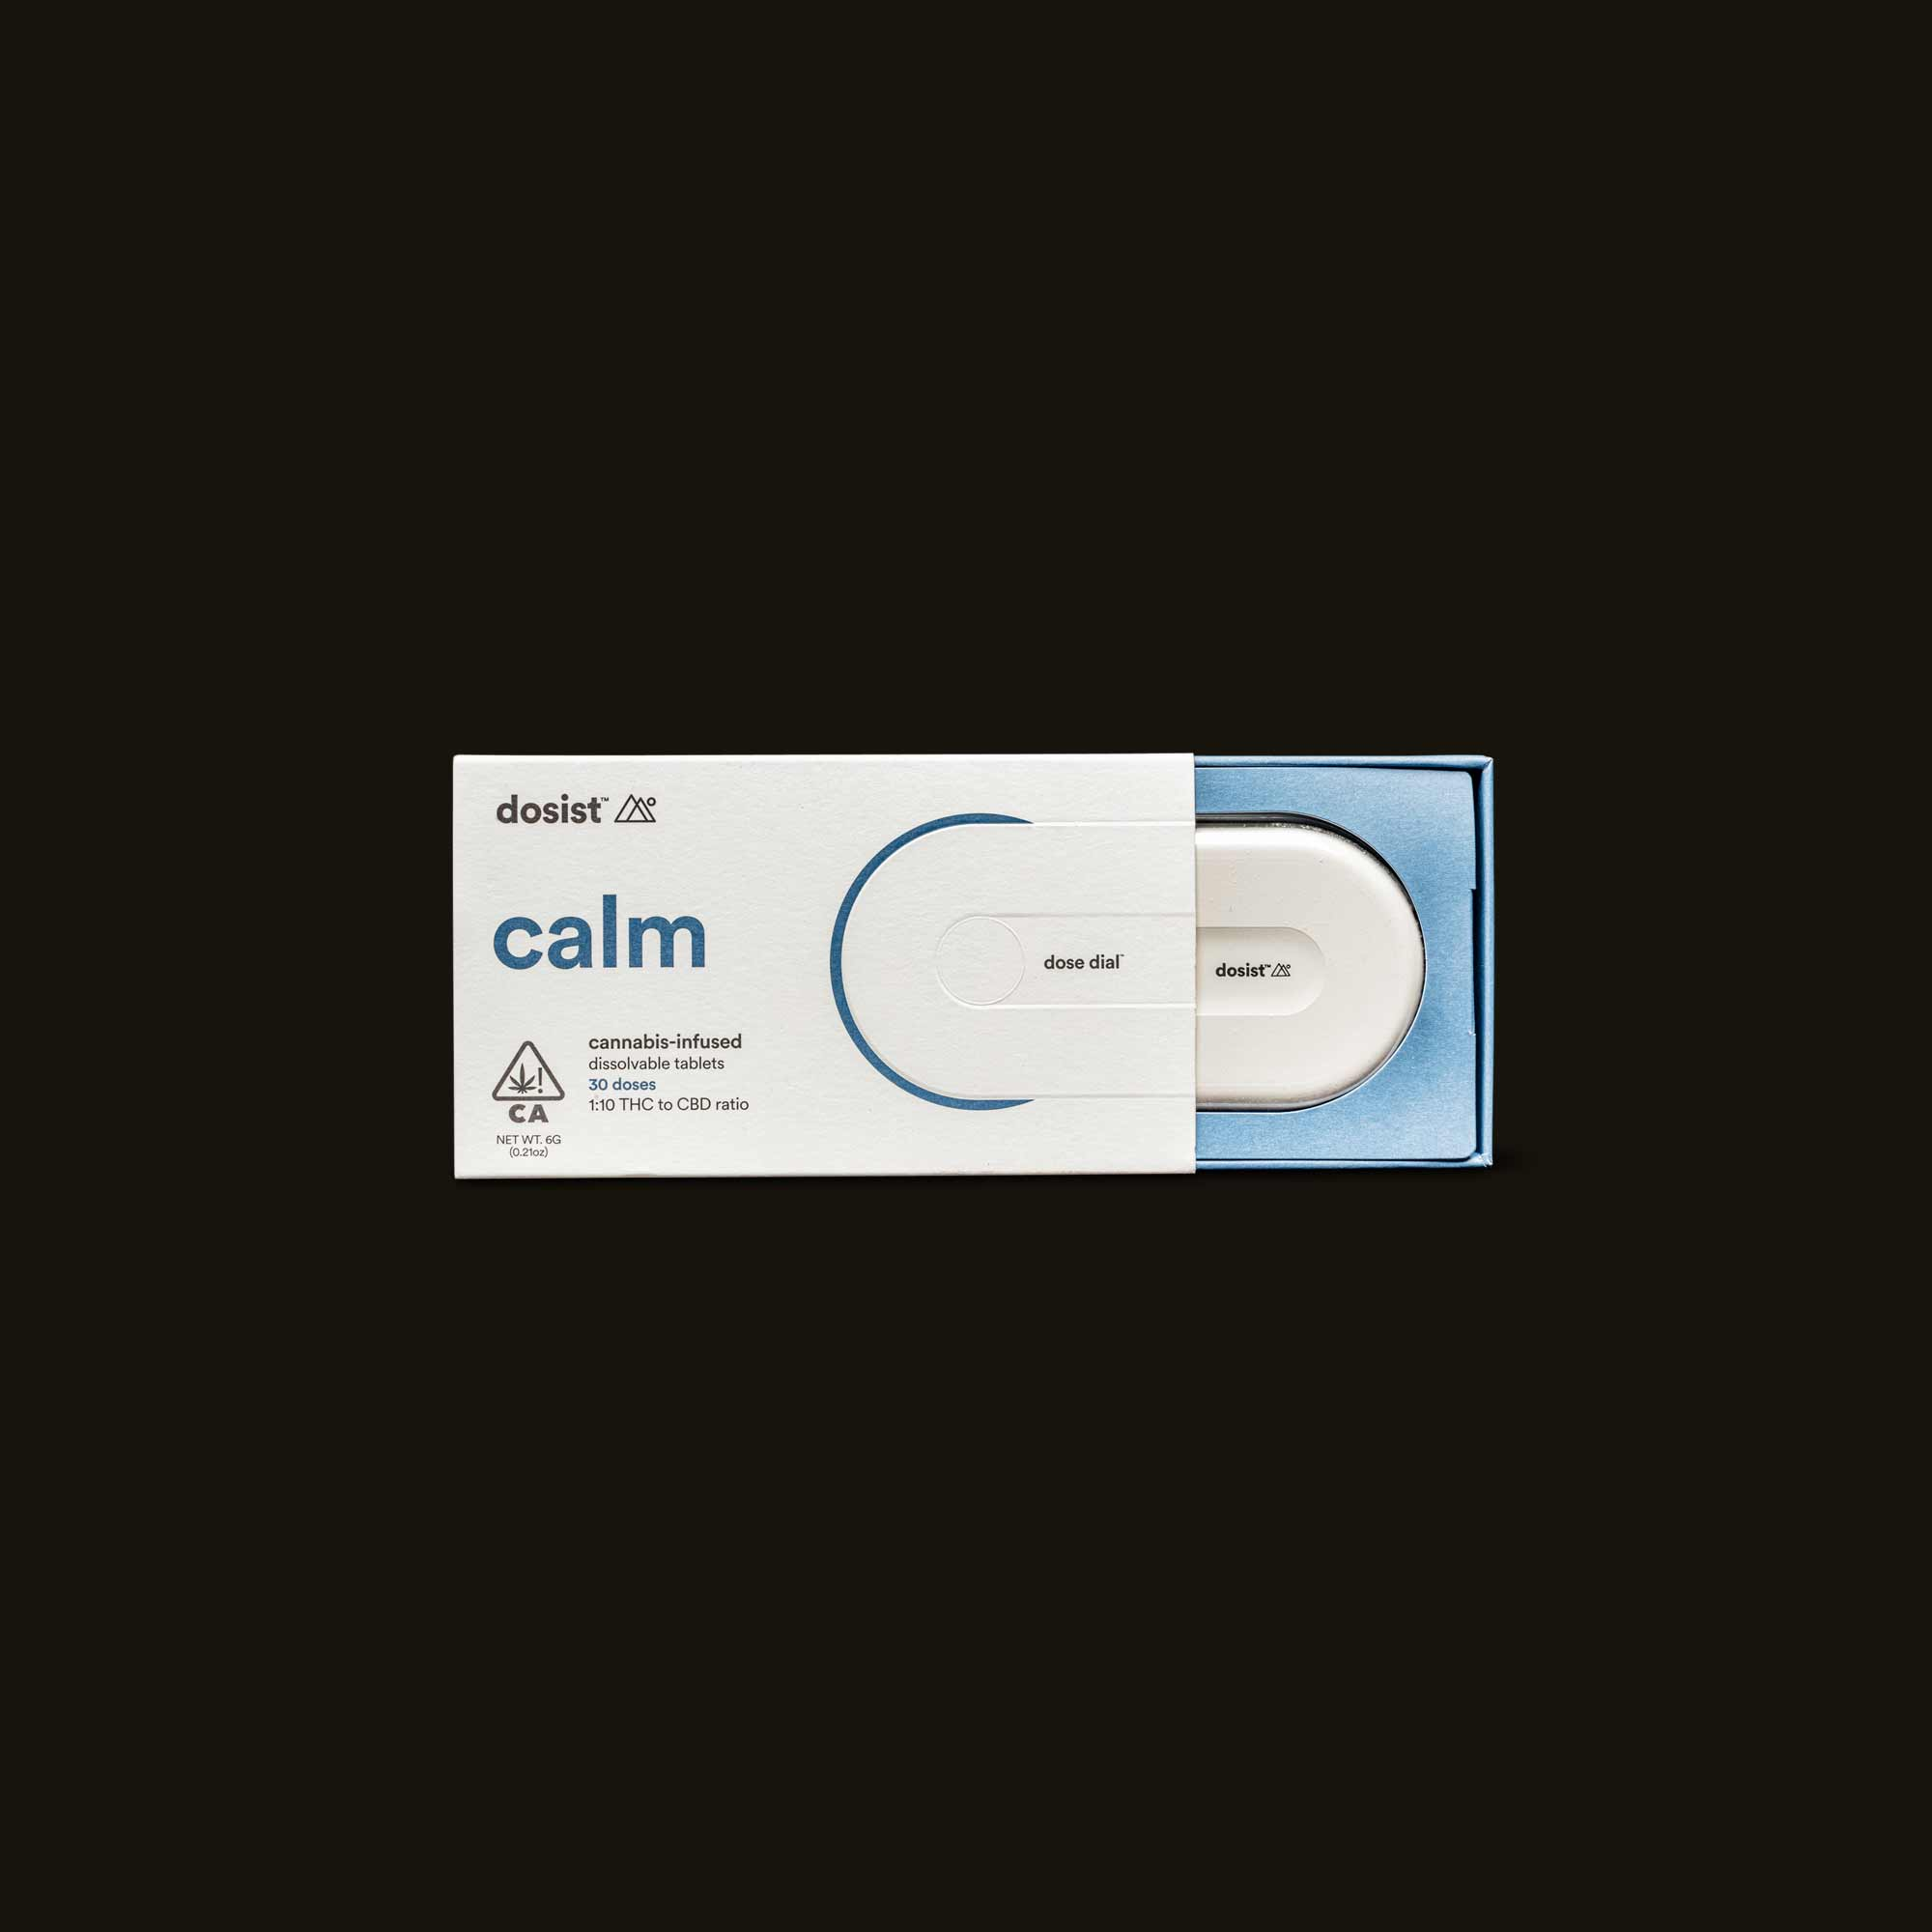 Tablet Pill by dosist